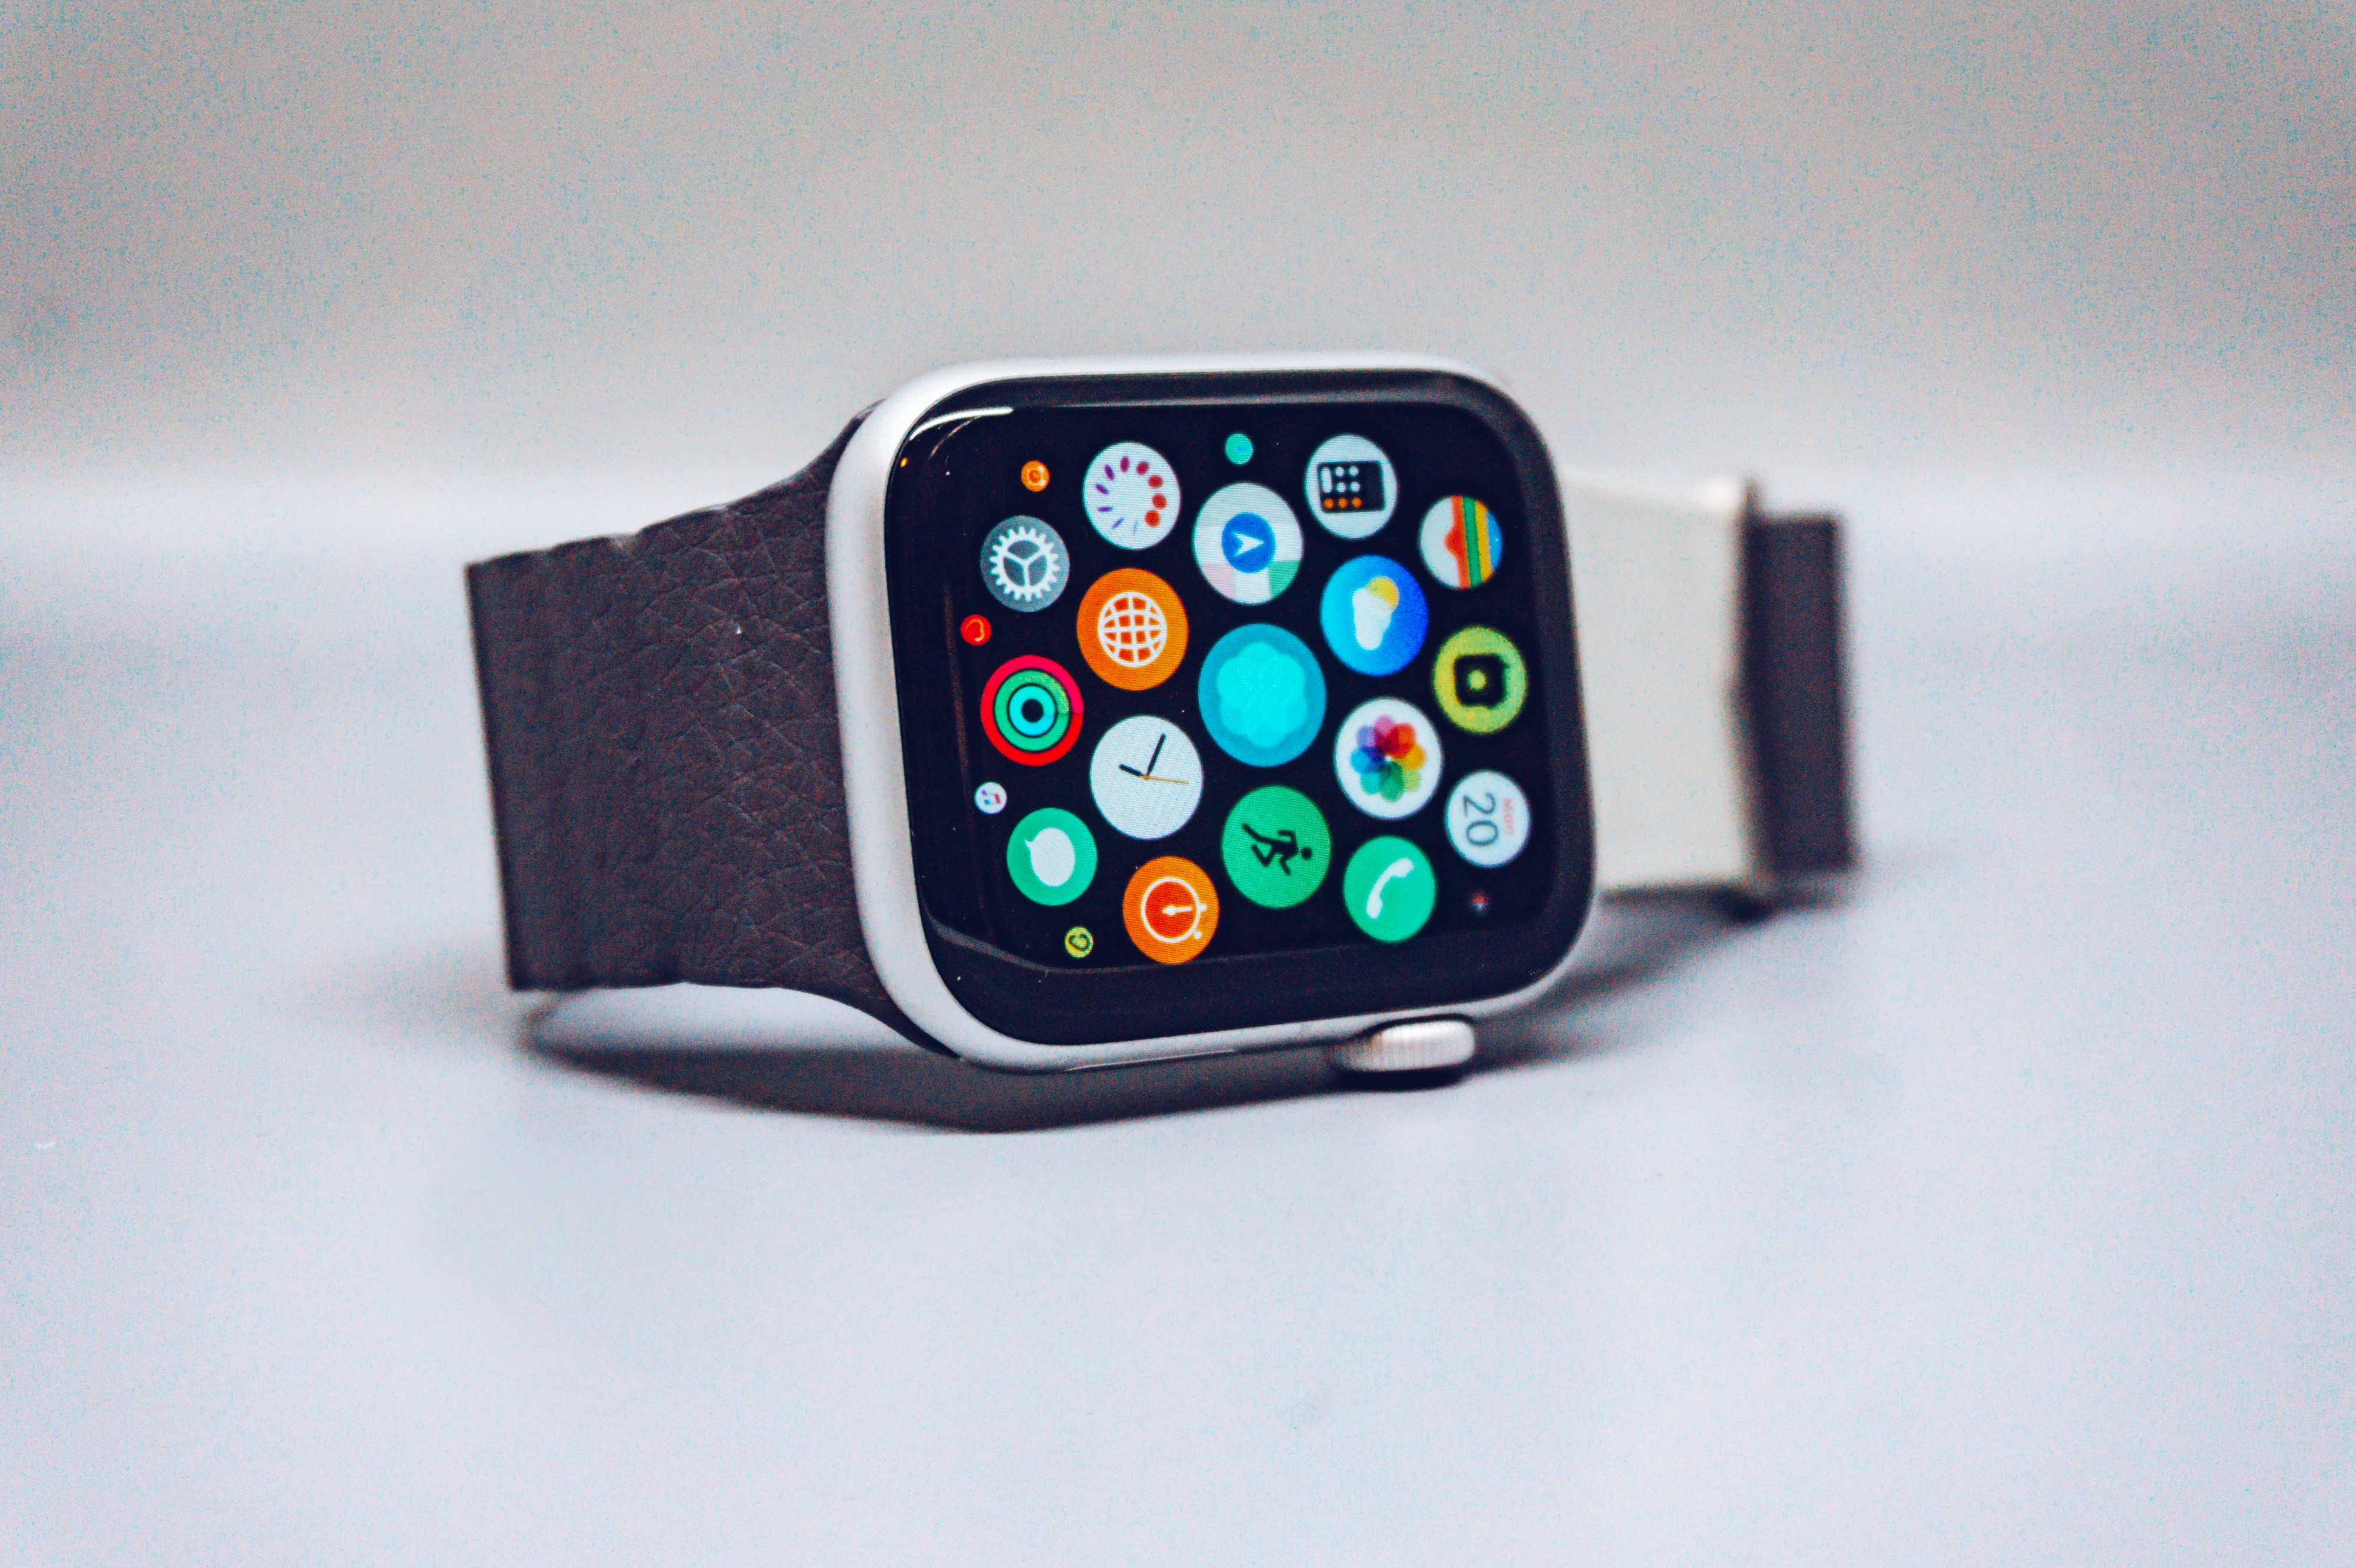 Apple Watch studio shot